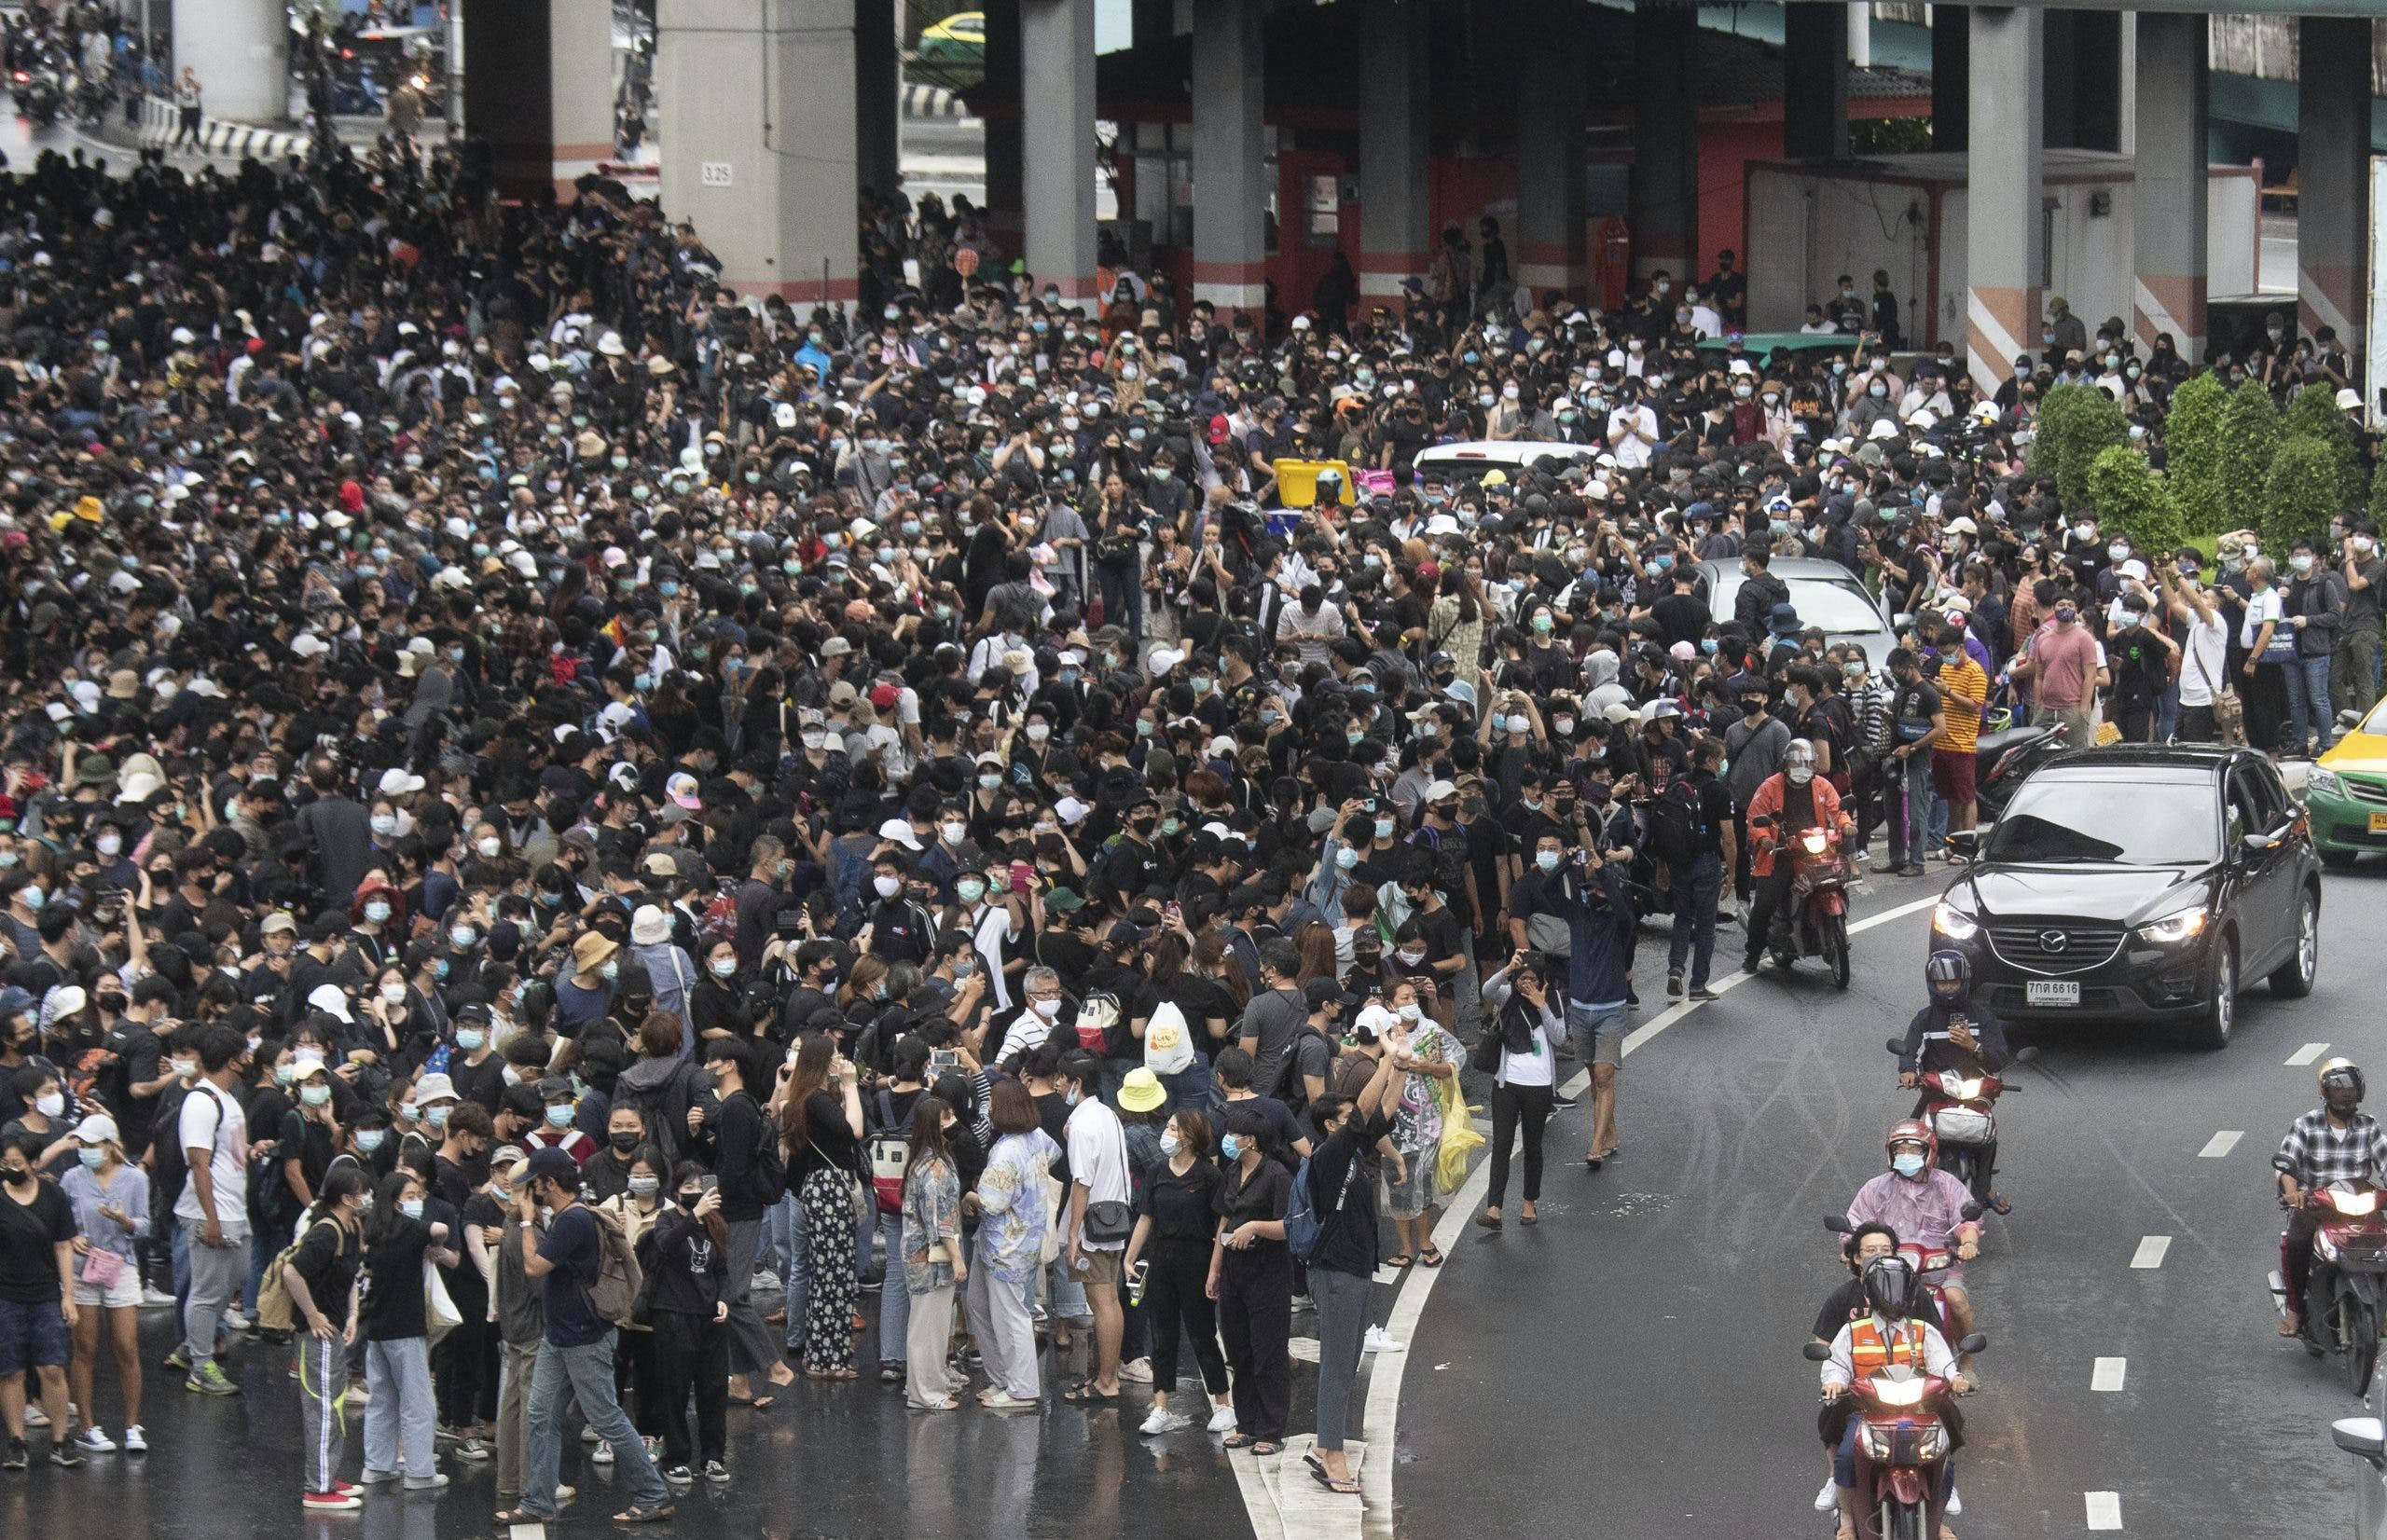 Bangkok shuts down transport systems as pro-democracy protests continue